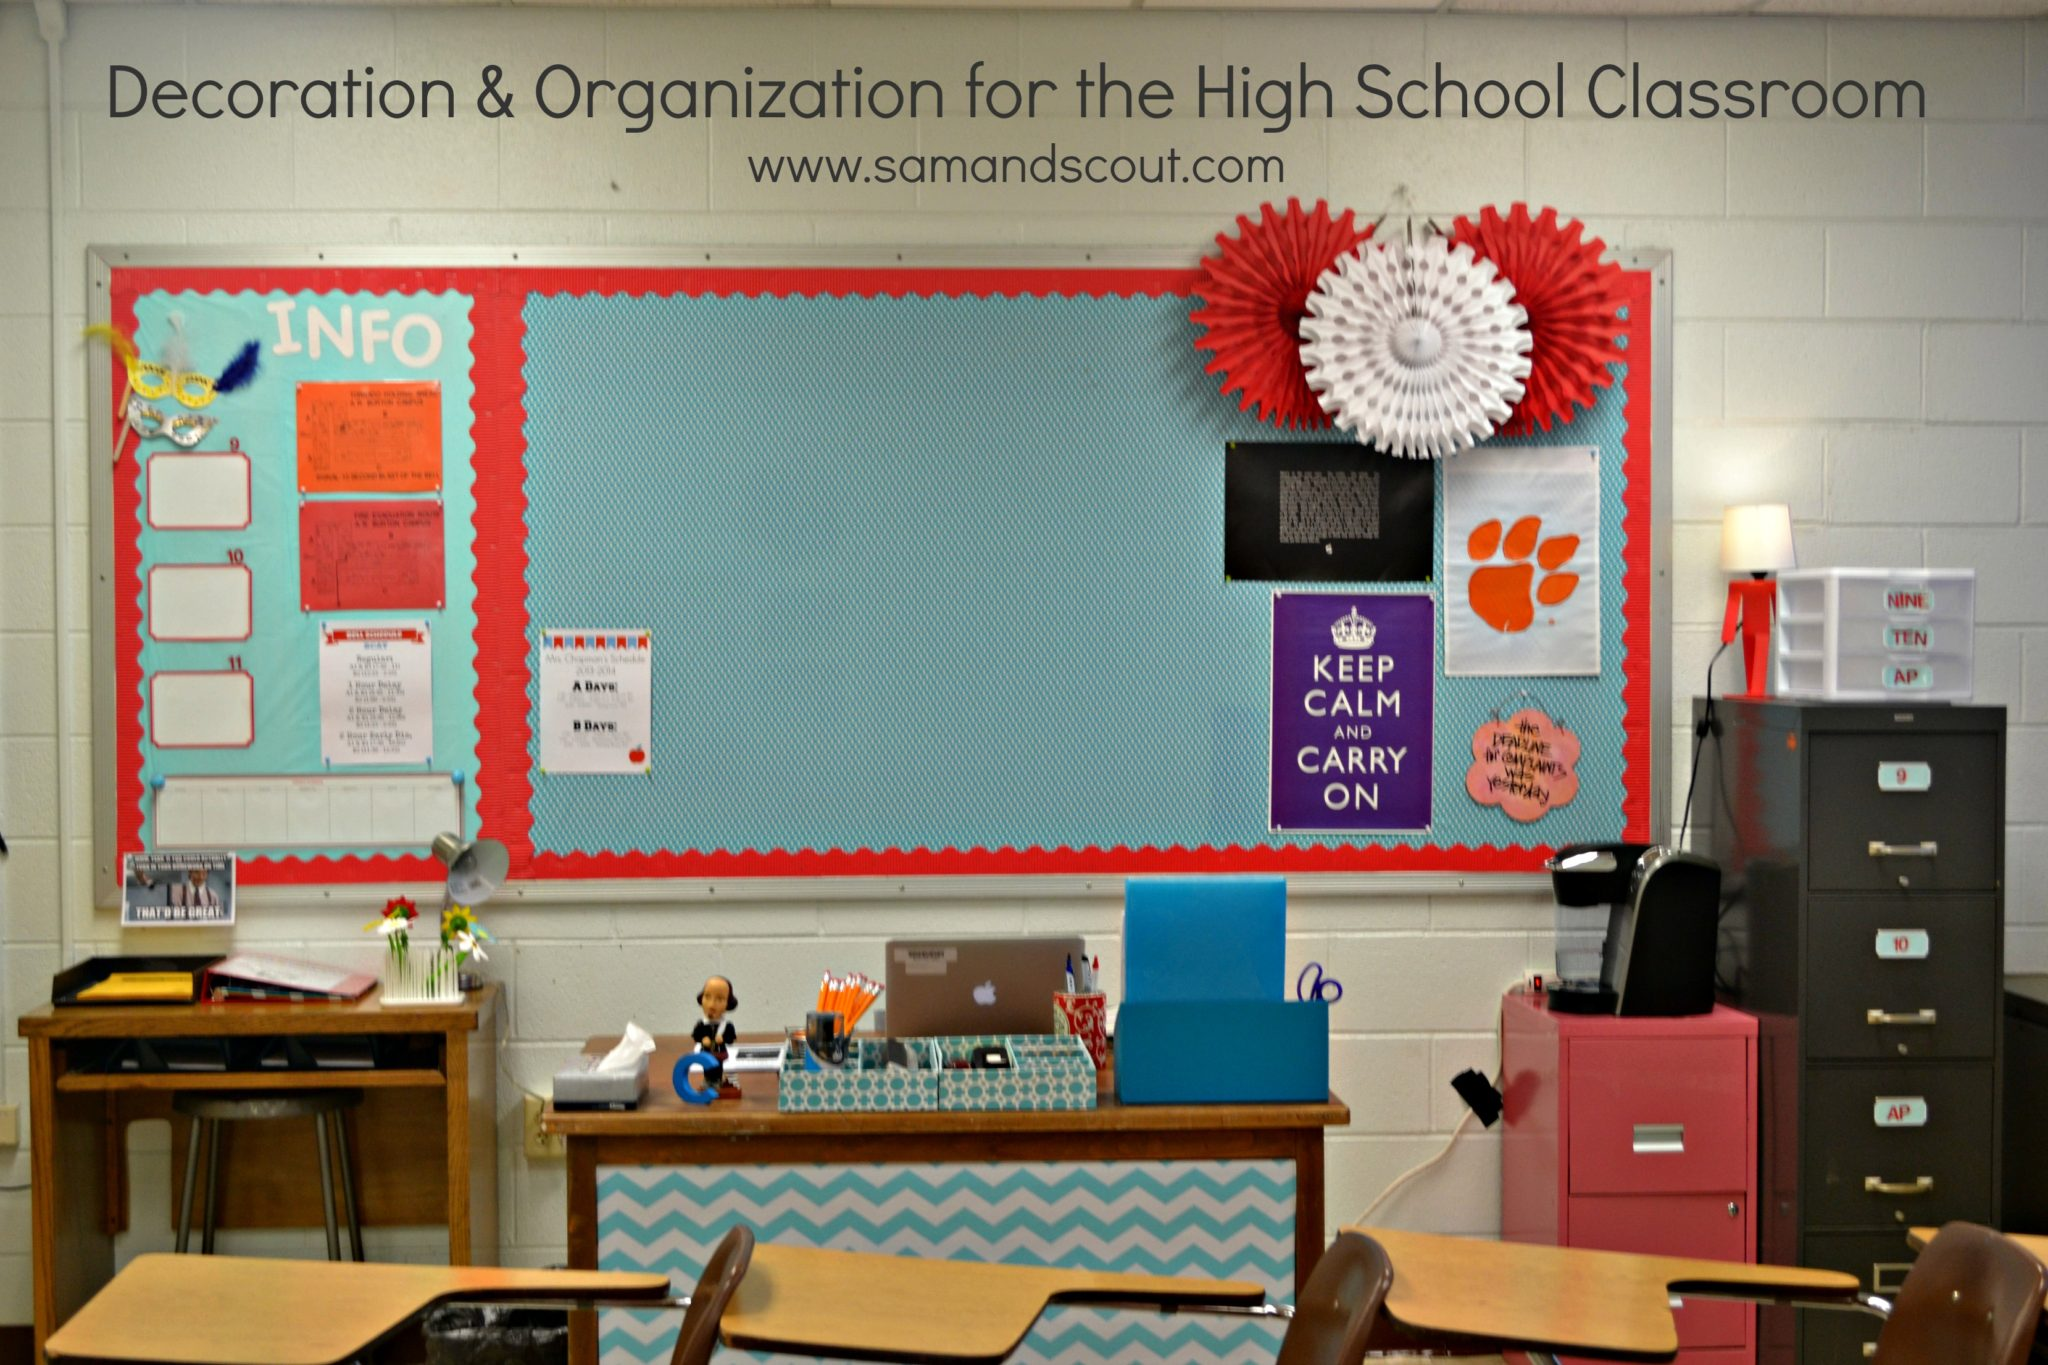 Classroom Bulletin Board Design For High School ~ Decoration organization for the high school classroom